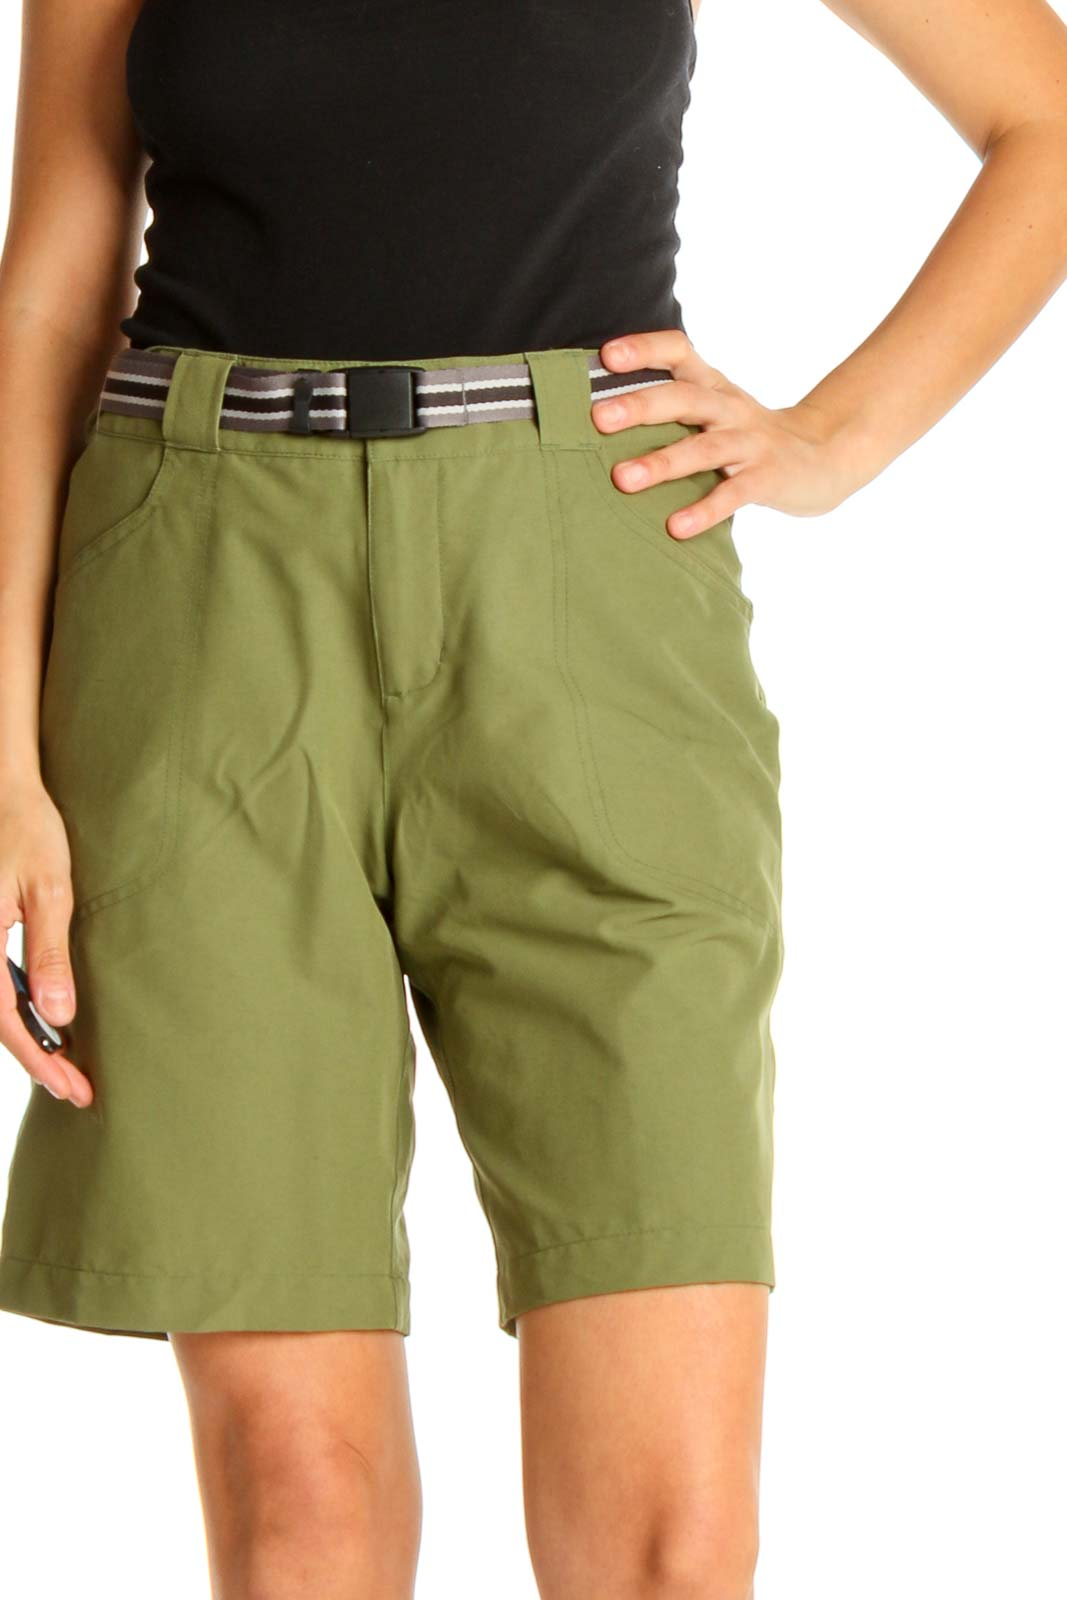 Green Solid All Day Wear Shorts Front